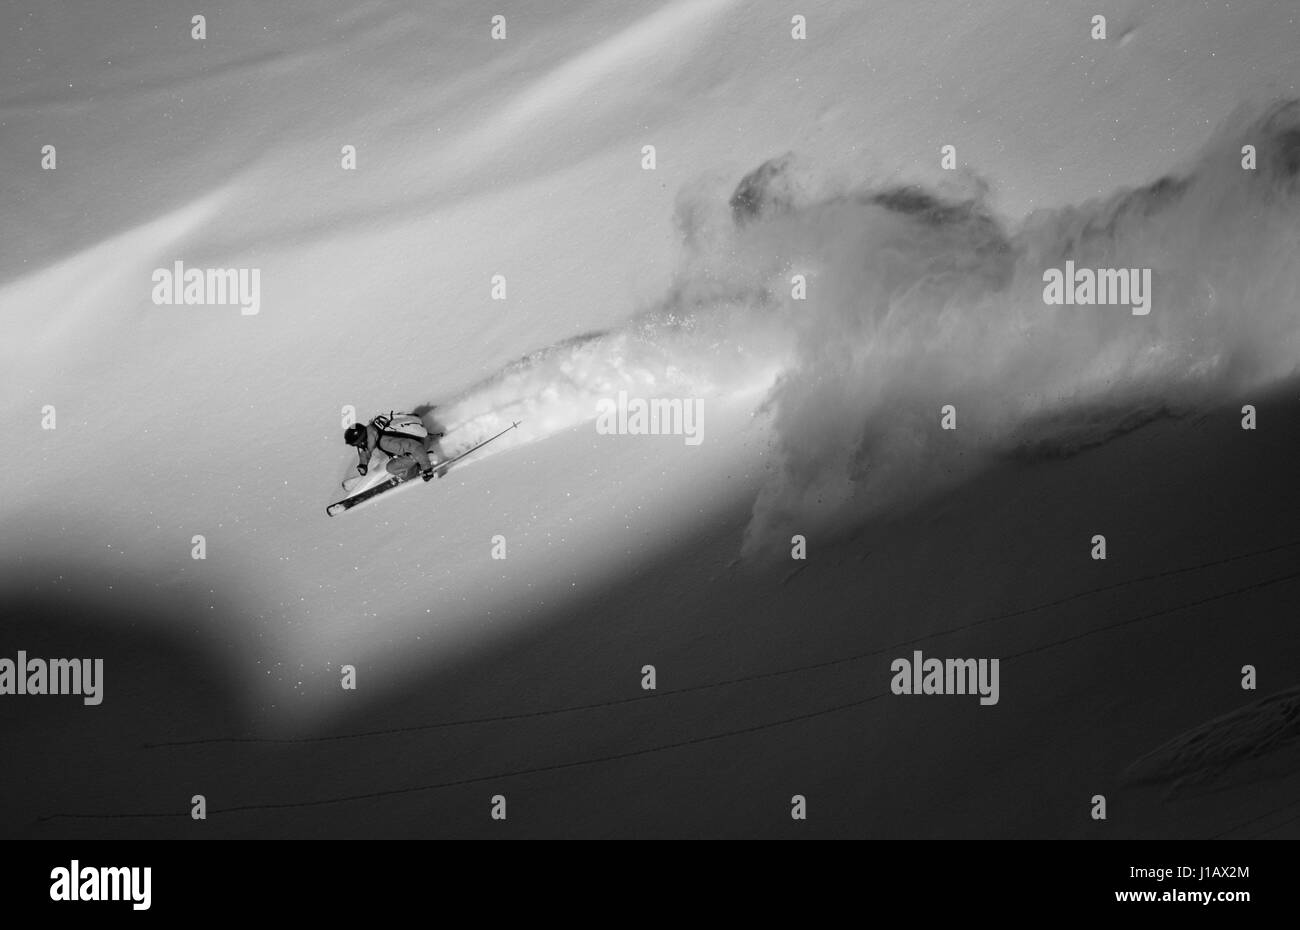 A skier races down off-piste and sprays snow behind him at a mountain in the Gastein Valley, Austria. - Stock Image